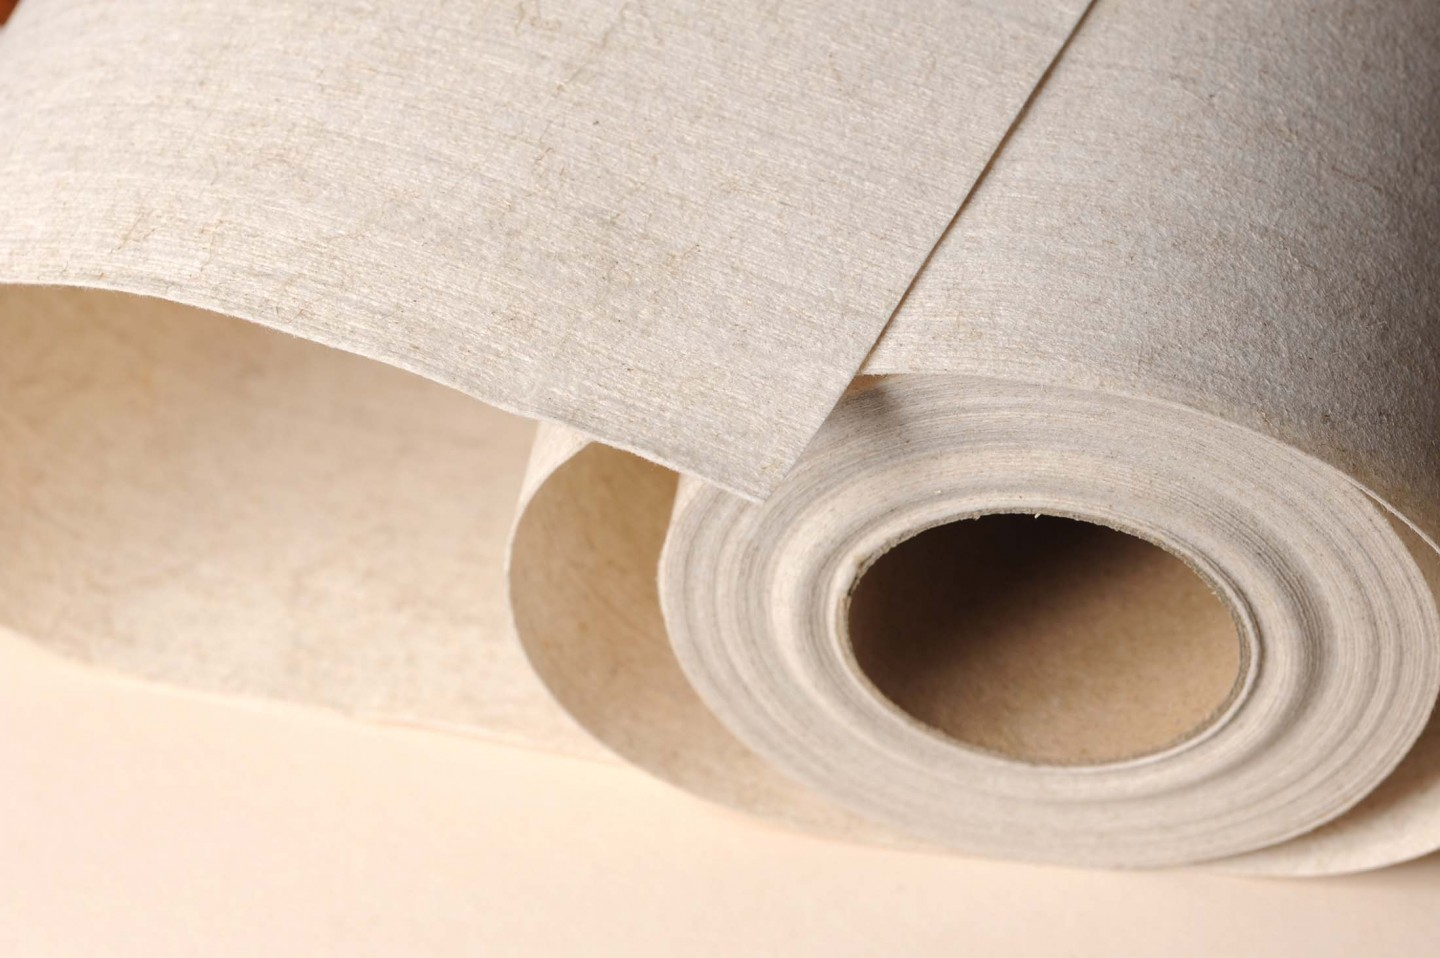 Completely compostable wallpaper - Veruso Lino